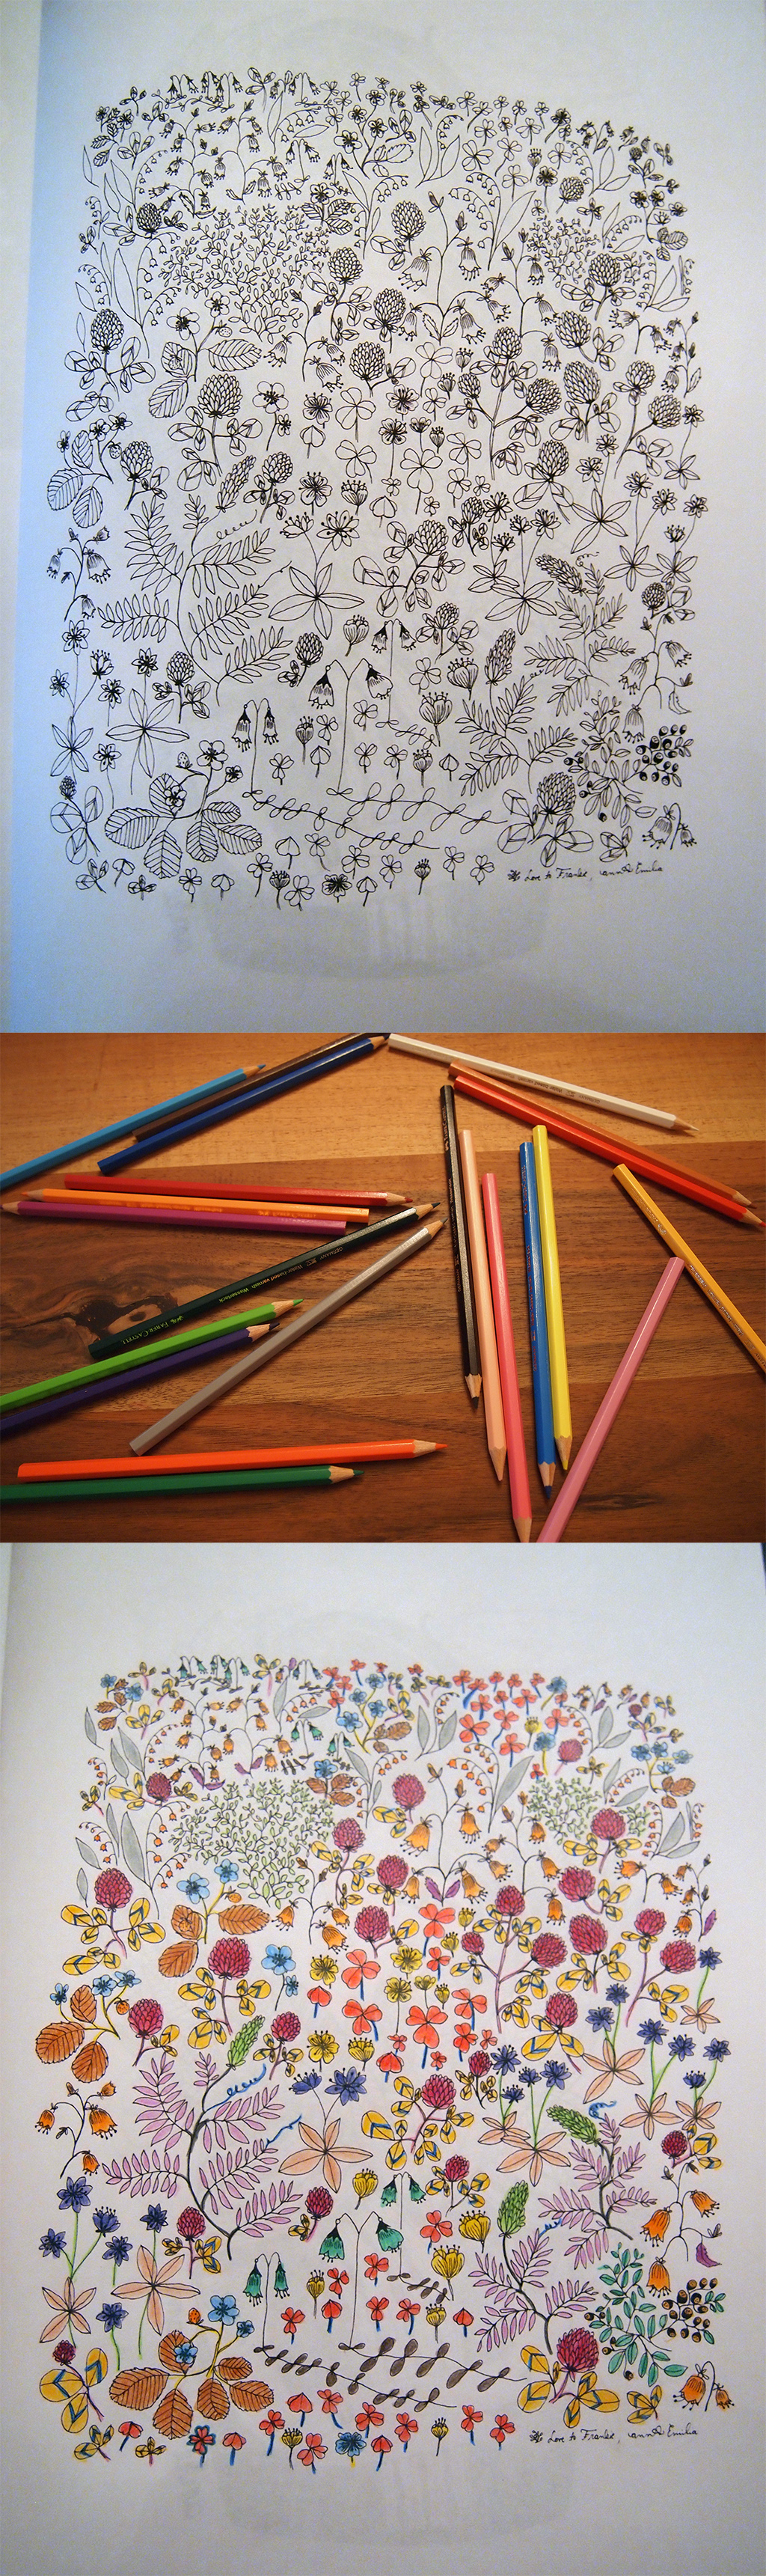 Kids' activities reloaded: crayoning! Fun!